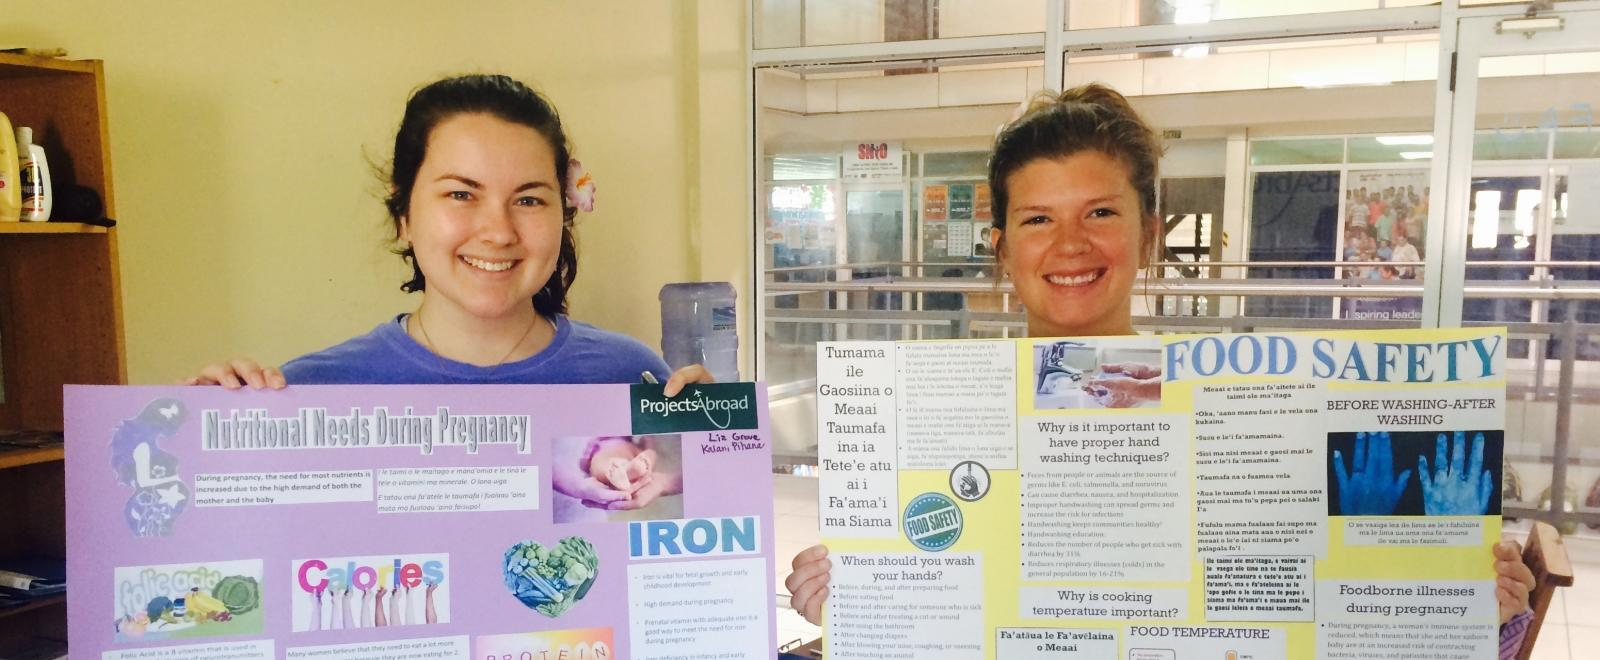 Students hold up educational posters during their Nutrition internship in Samoa.